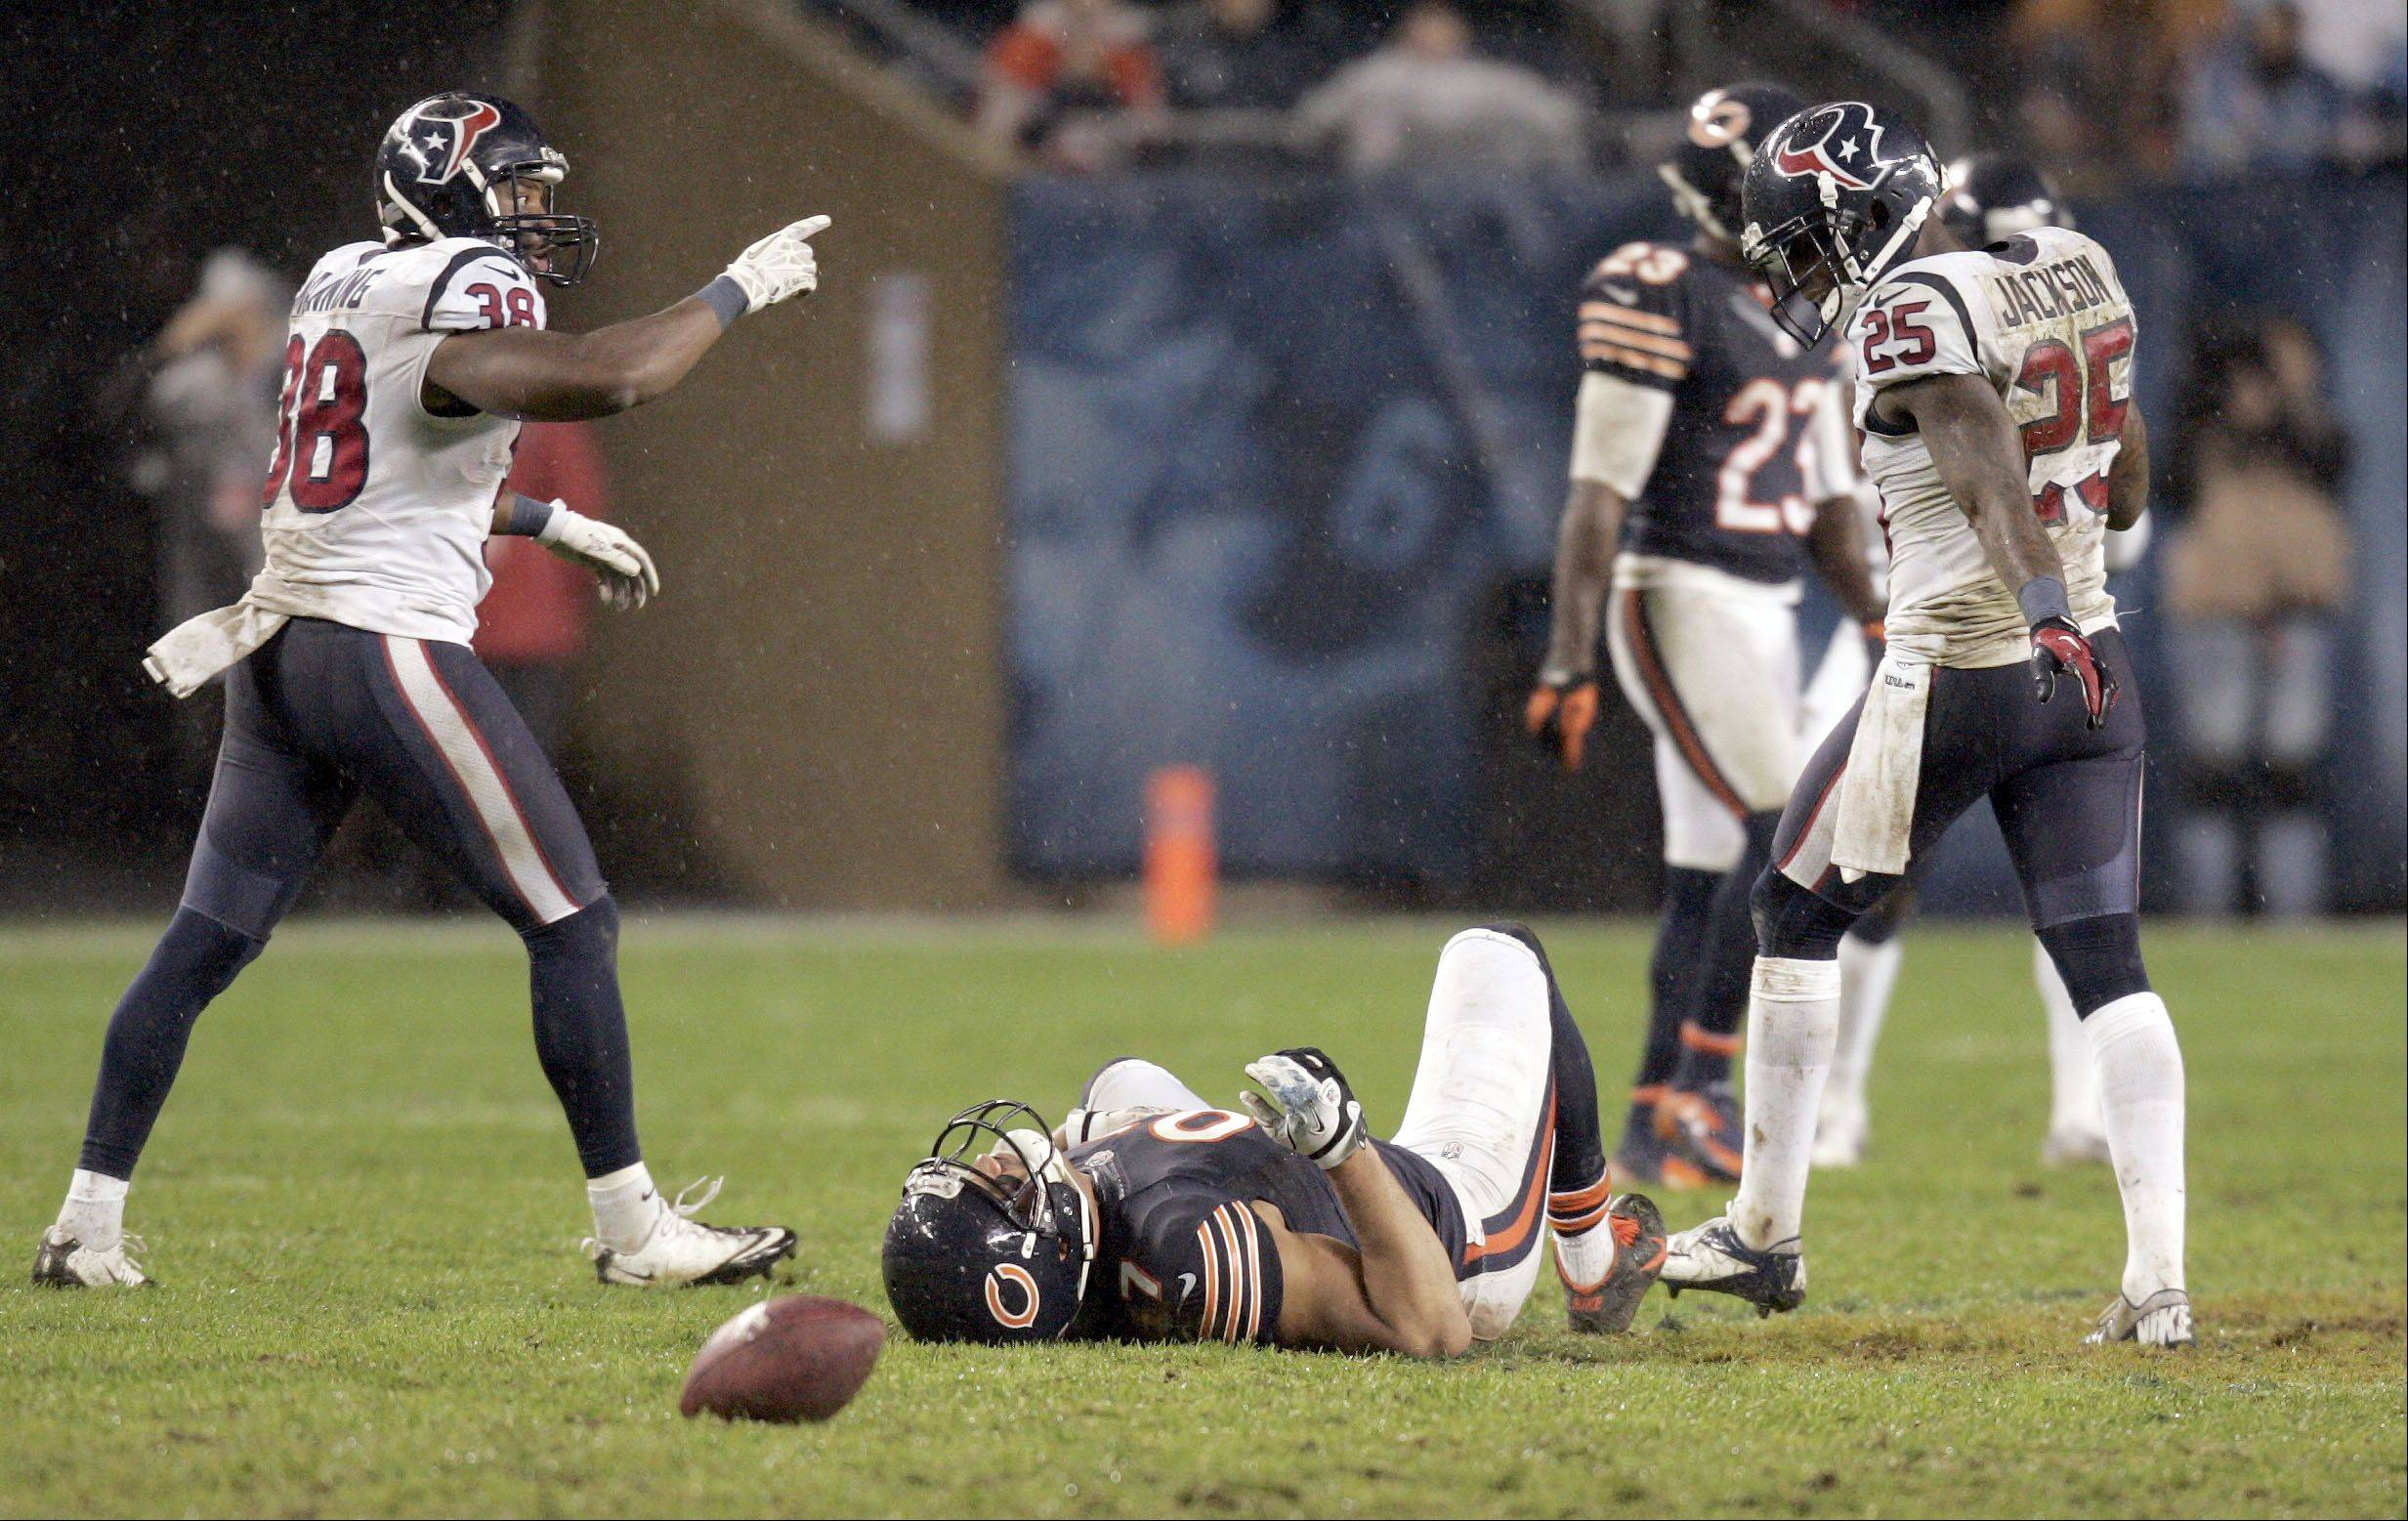 Chicago Bears tight end Kellen Davis (87) lies on the ground after missing a pass later in the fourth quarter. Houston Texans free safety Danieal Manning (38) and Kareem Jackson (25) celebrate in the background.